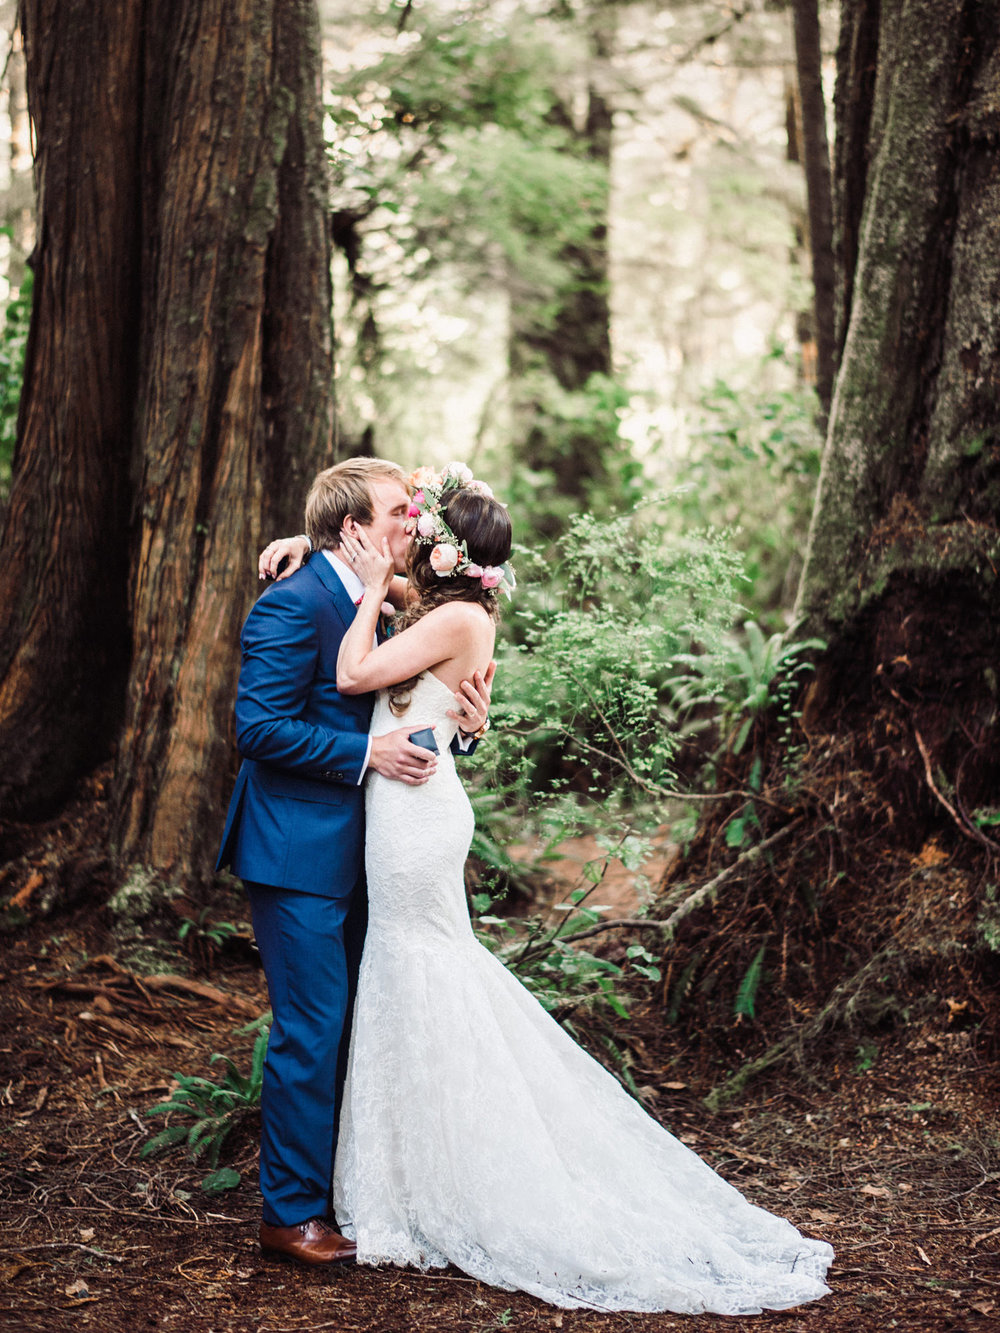 wickaninnish-inn-tofino-bc-elopement-ryan-flynn-photography-00049.JPG